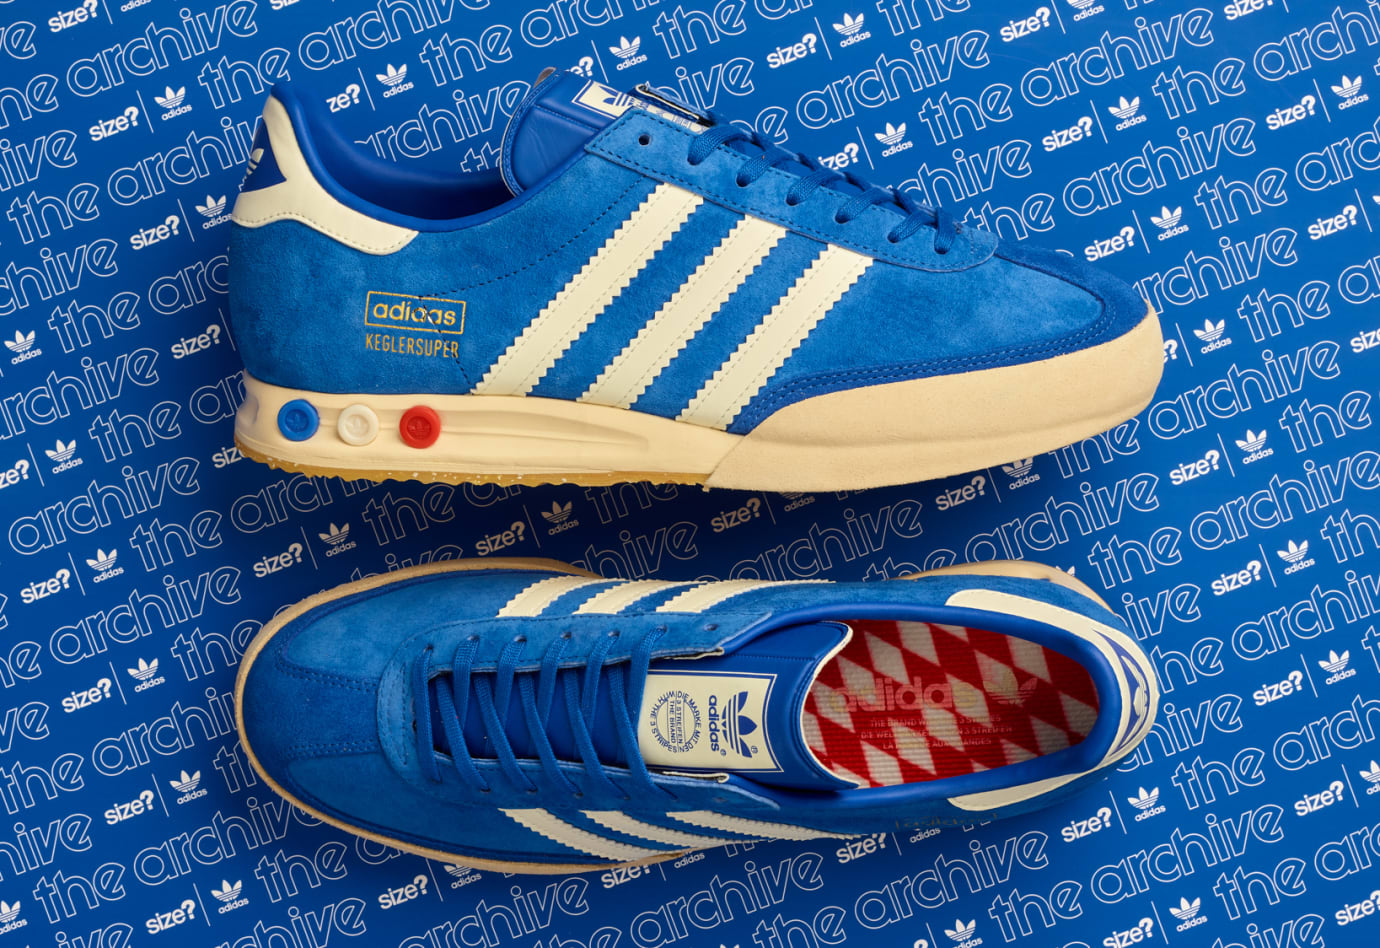 stasera tosse tassa di iscrizione  Size? Exclusive Adidas Originals Archive Kegler Super 'Beer' Release Date |  Sole Collector